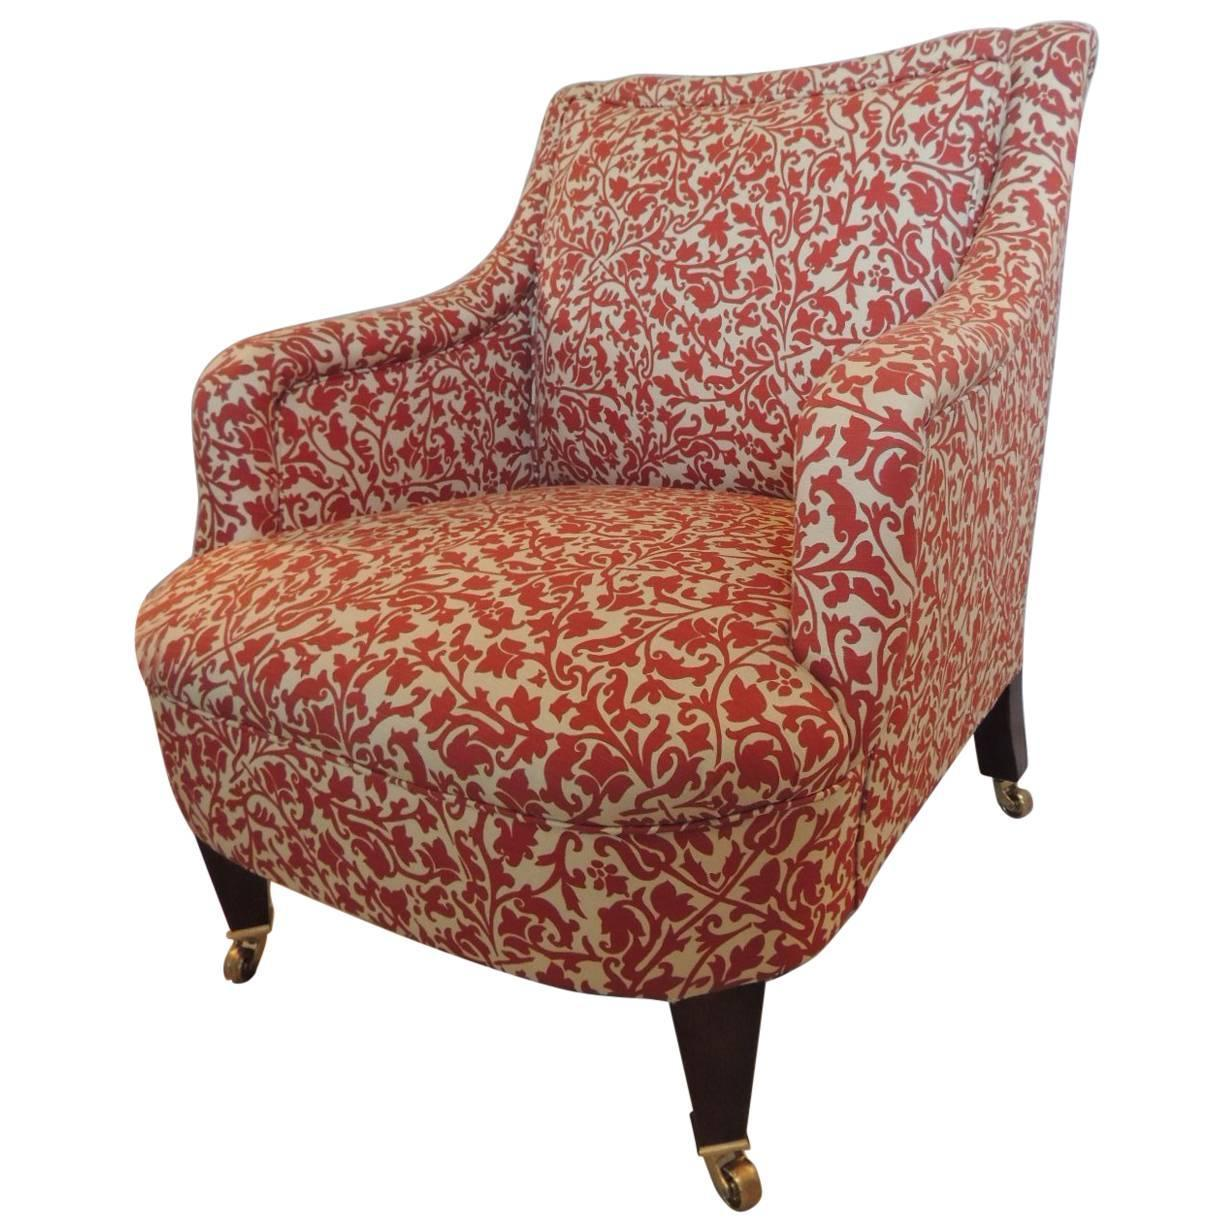 Classic George Smith Upholstered Armchair In India Flower Fabric At 1stdibs